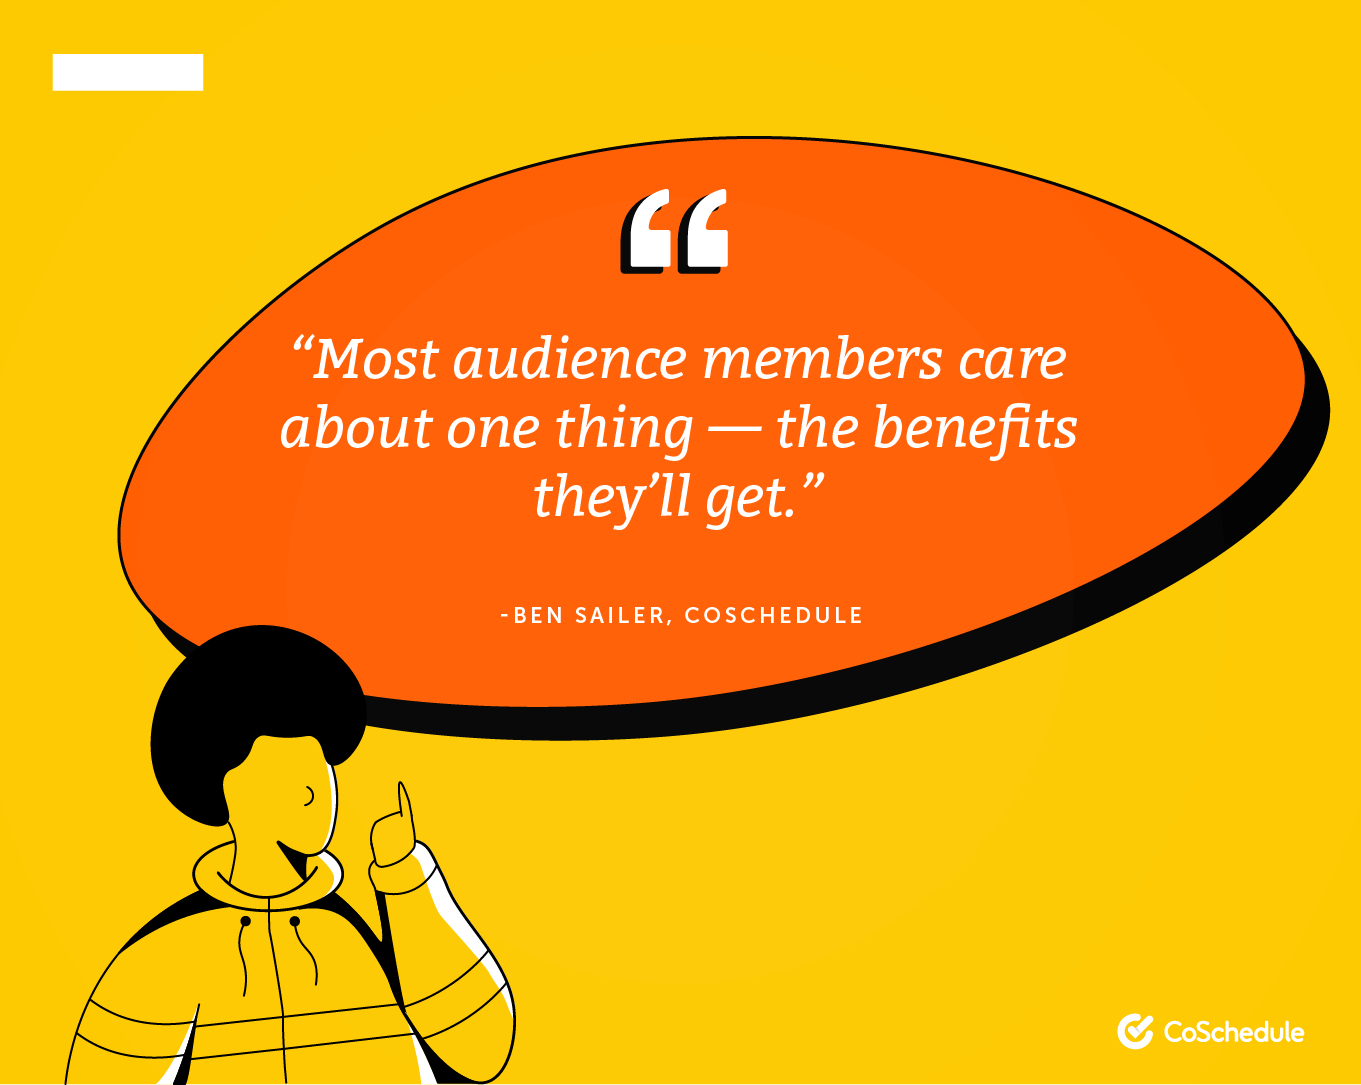 Audience members care about benefits